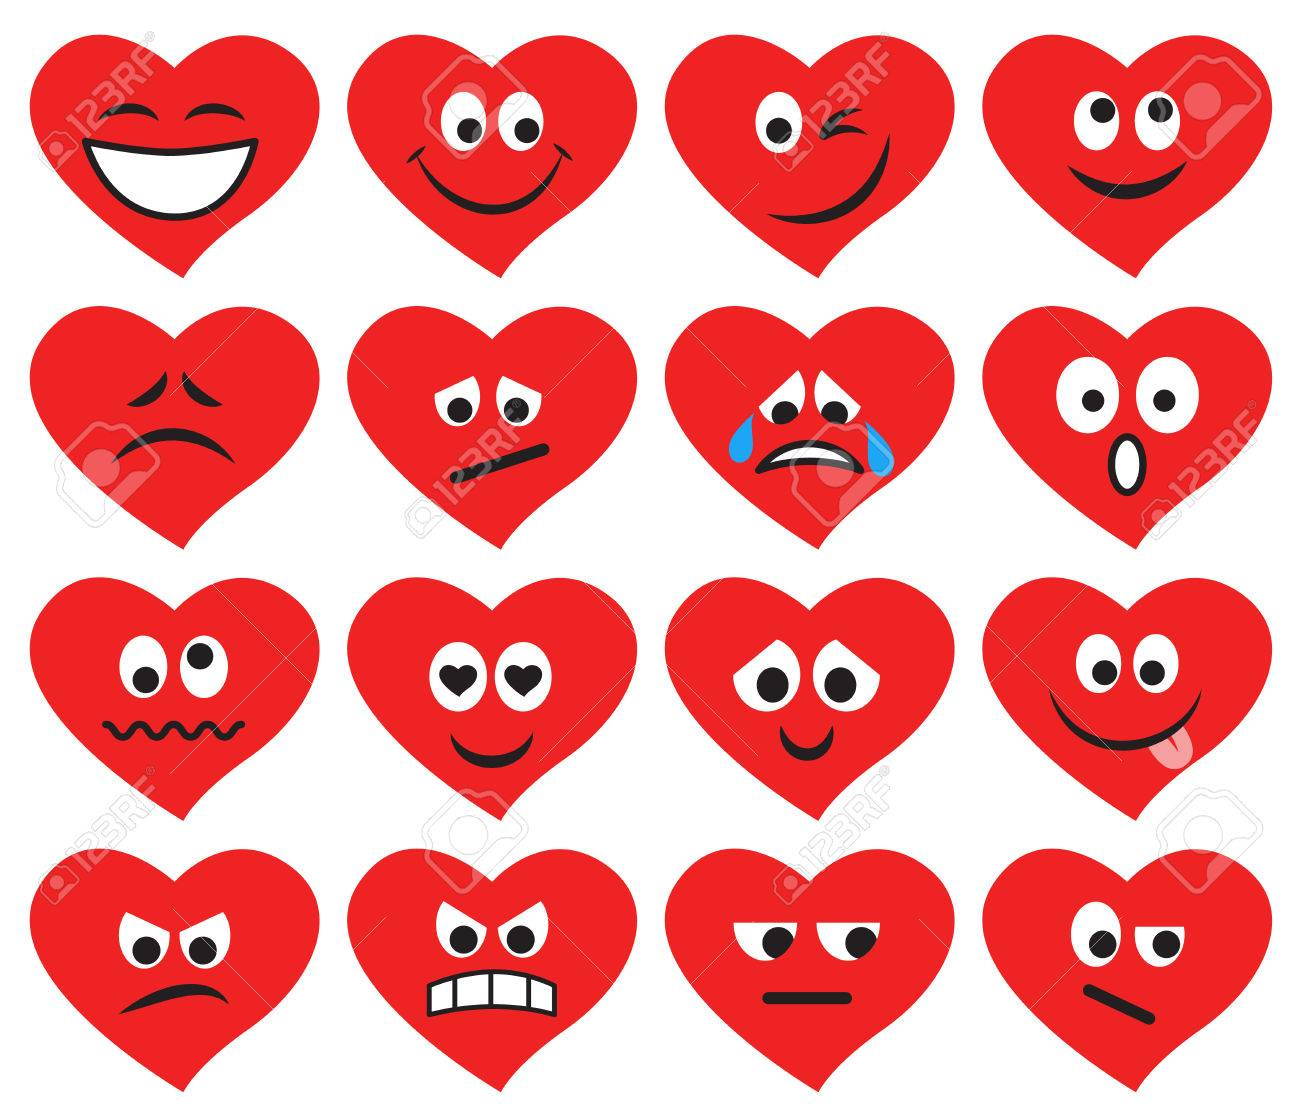 Set of emoticons and emojis in red heart form  Vector illustration